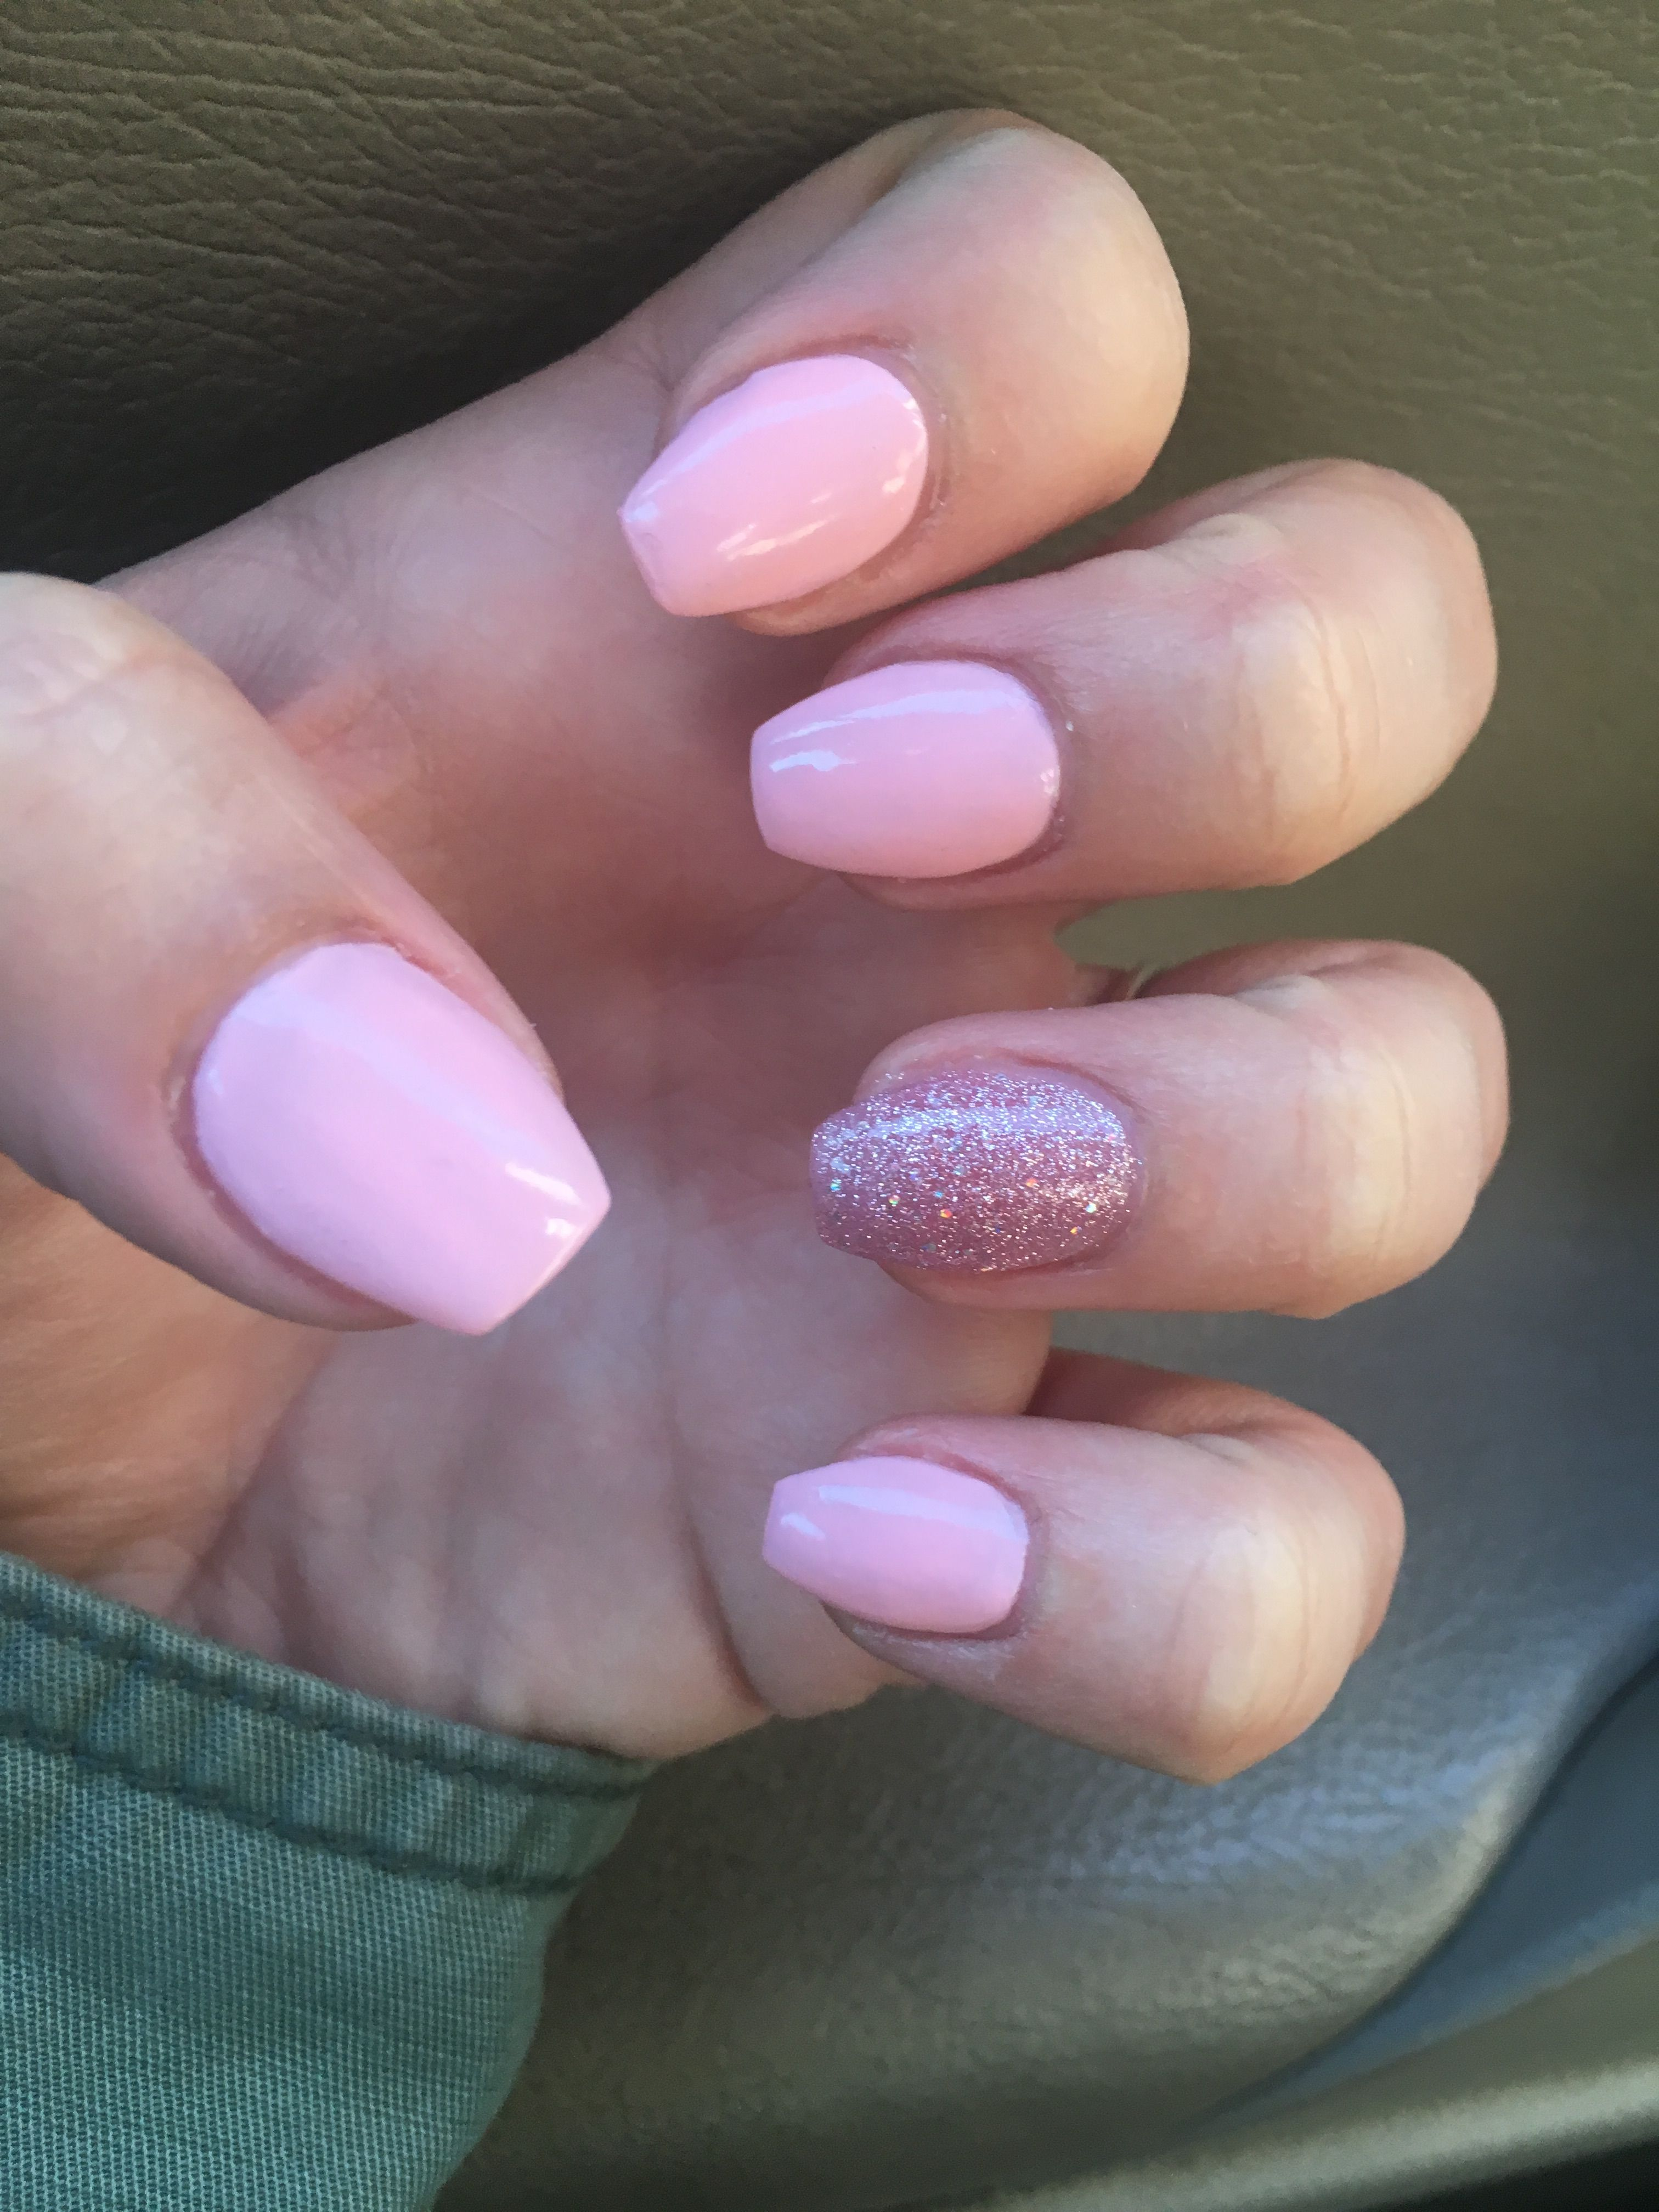 Opi Small Cute And Milani Pink Flare Short Coffin Nails Light With Glitter